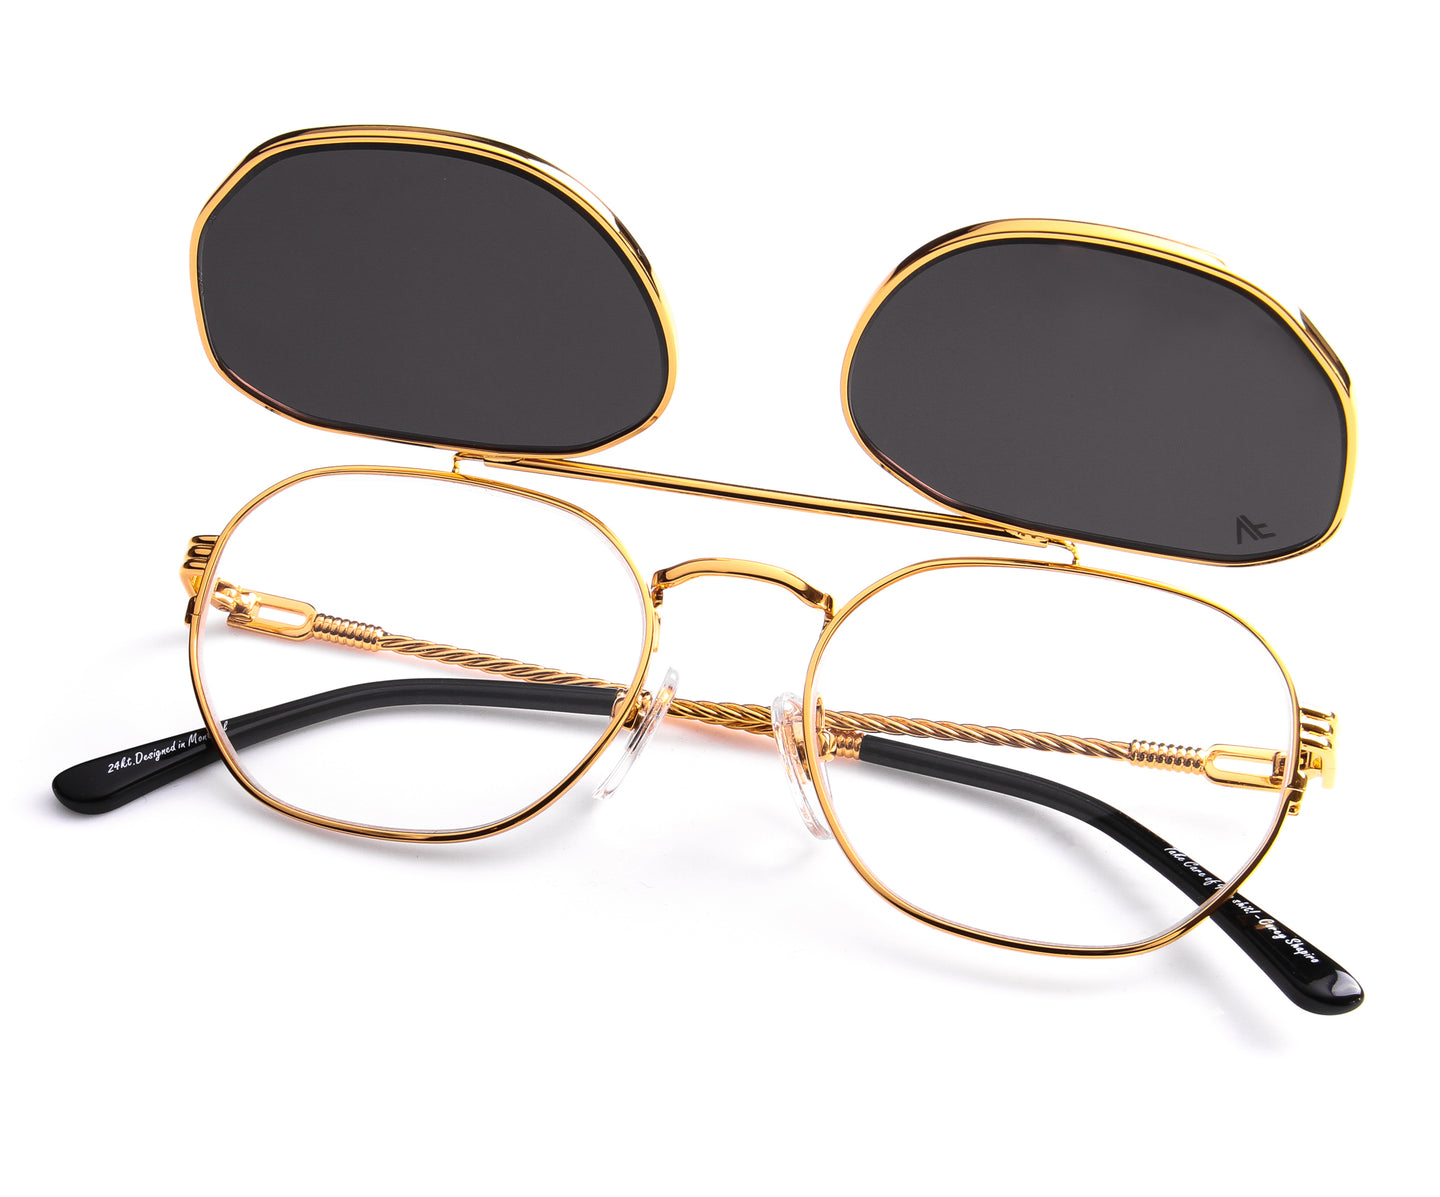 VF Detroit Player Flip 24KT Gold, VF Masterpiece , glasses frames, eyeglasses online, eyeglass frames, mens glasses, womens glasses, buy glasses online, designer eyeglasses, vintage sunglasses, retro sunglasses, vintage glasses, sunglass, eyeglass, glasses, lens, vintage frames company, vf